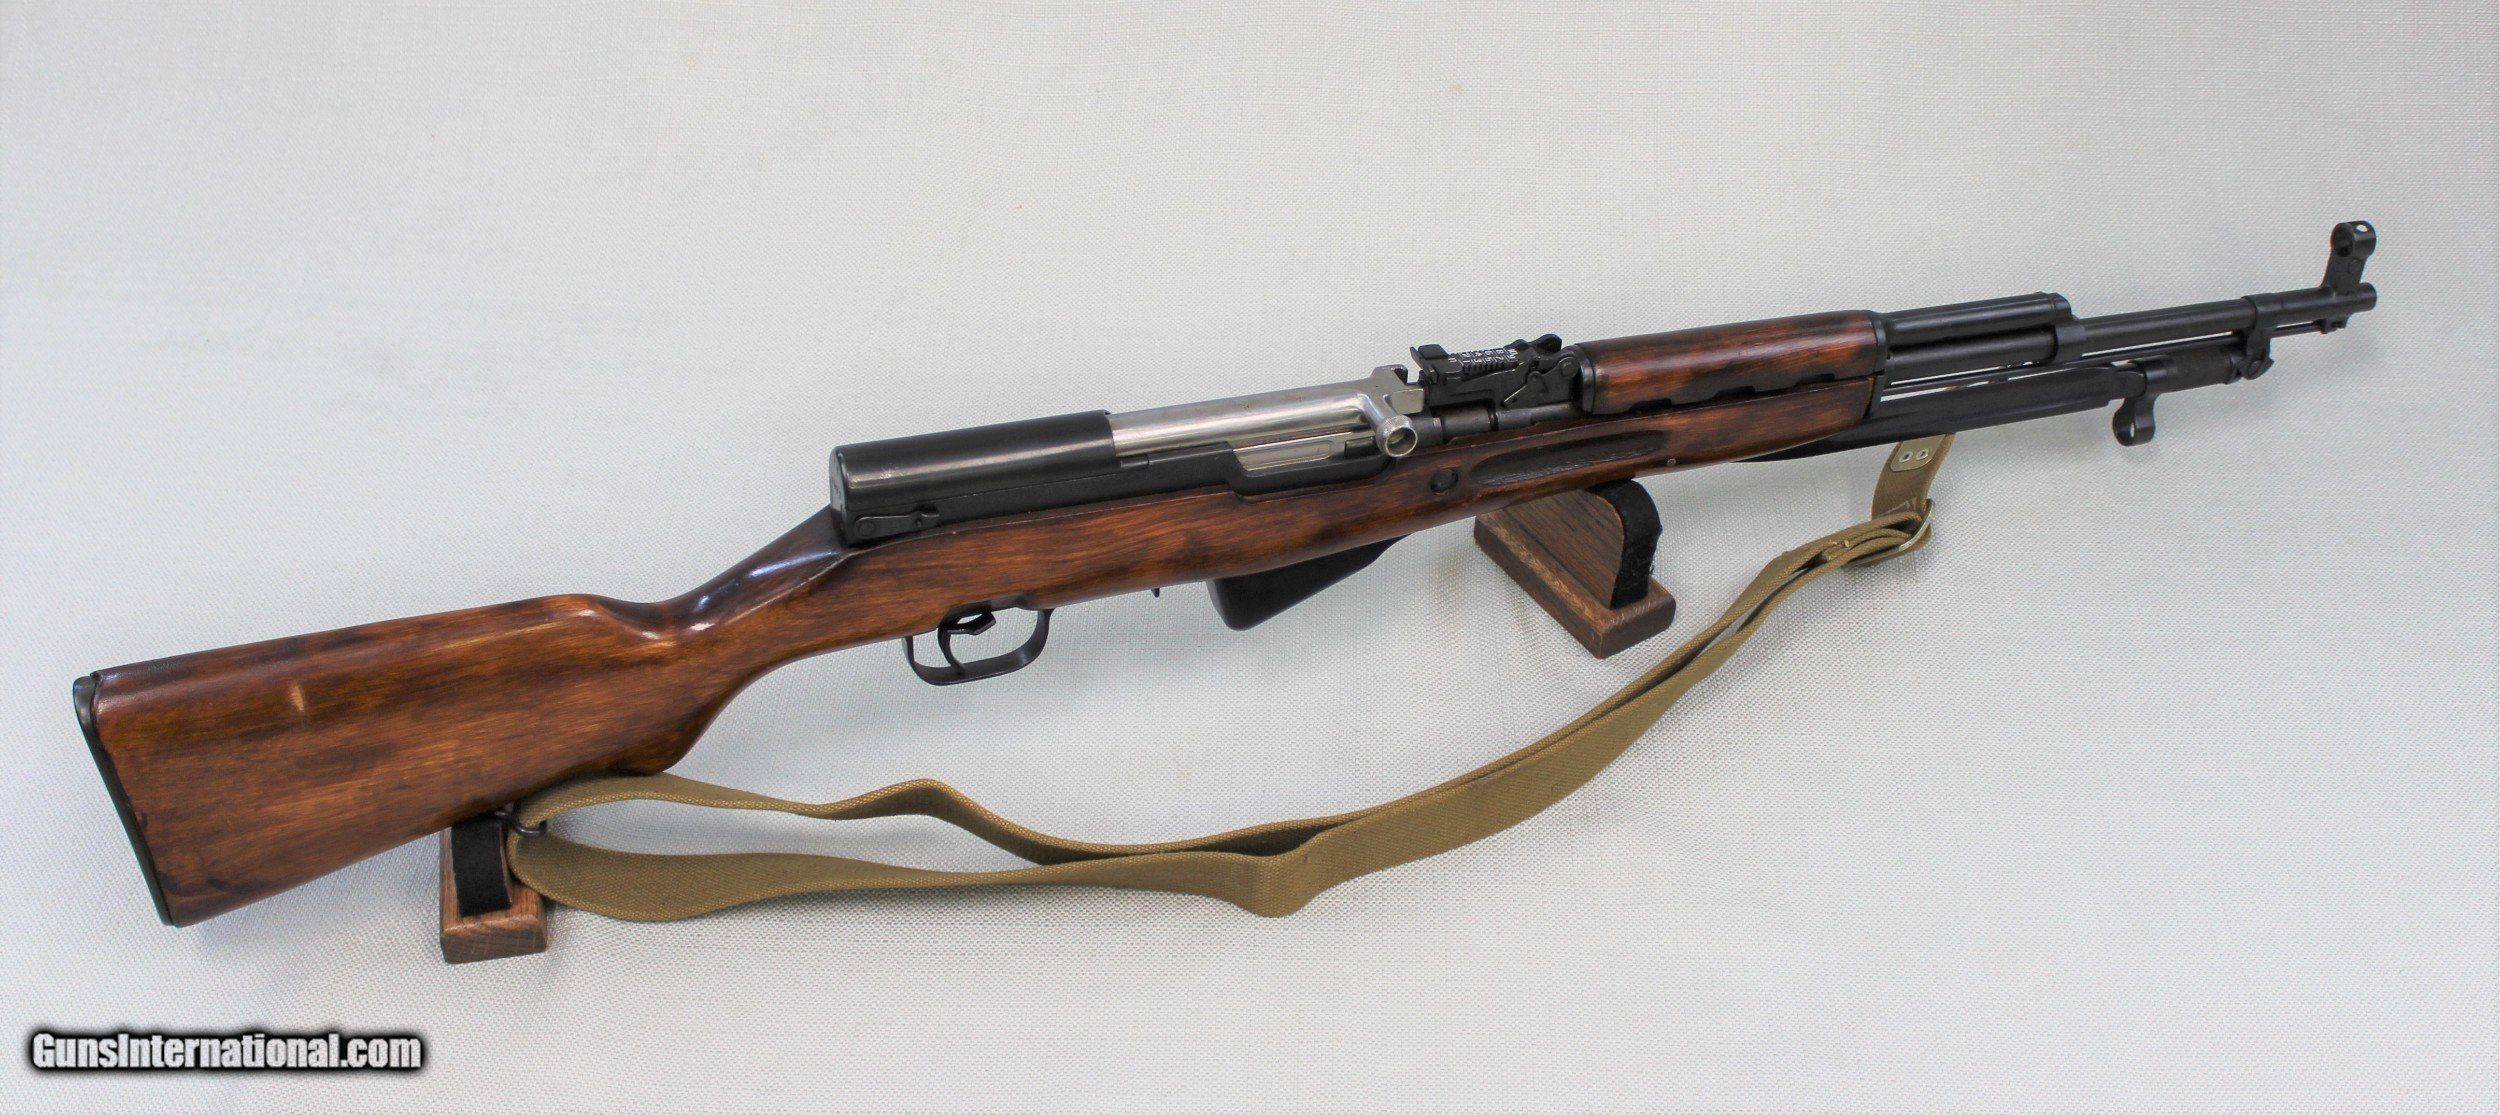 sks rifle dating)